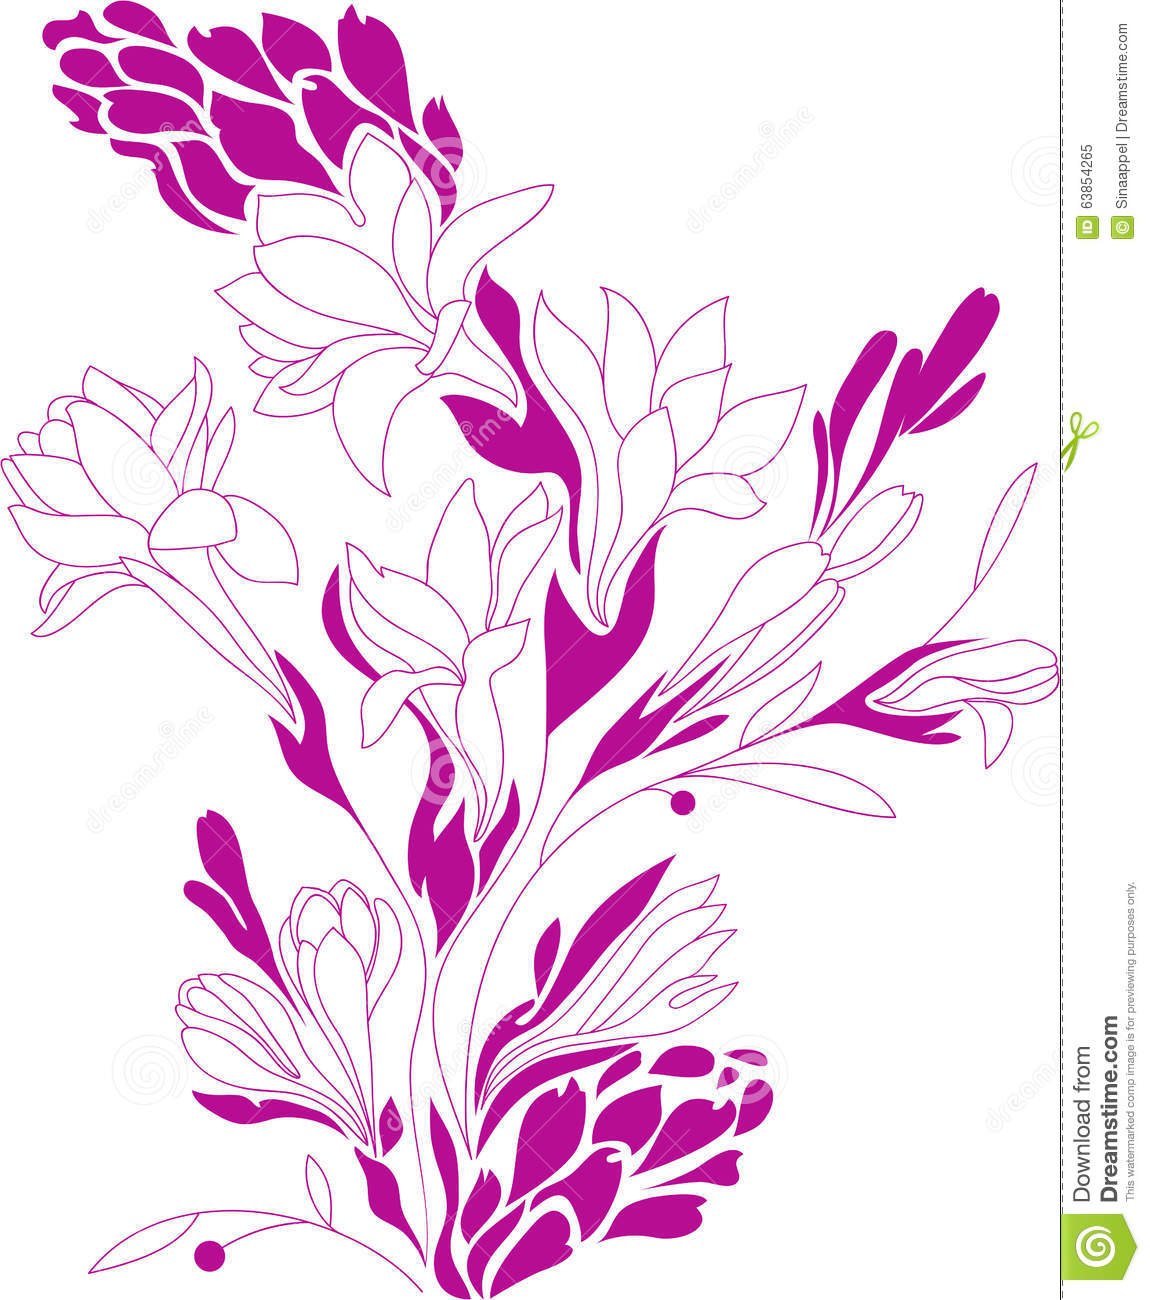 Contour Line Drawing Flowers : Flowers contour drawing stock vector image